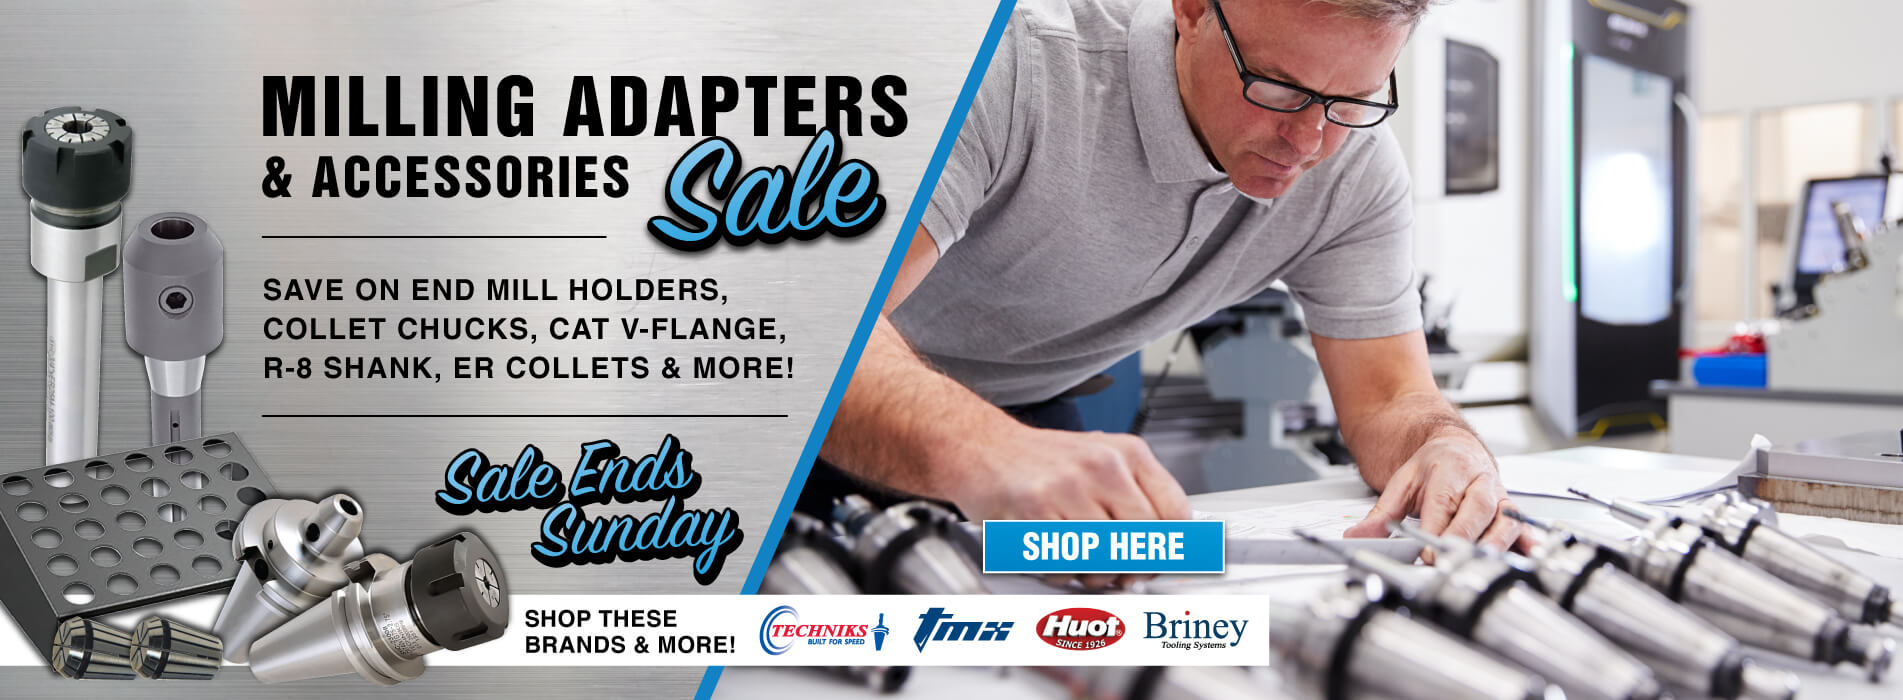 Milling Adapters and Accessories Sale